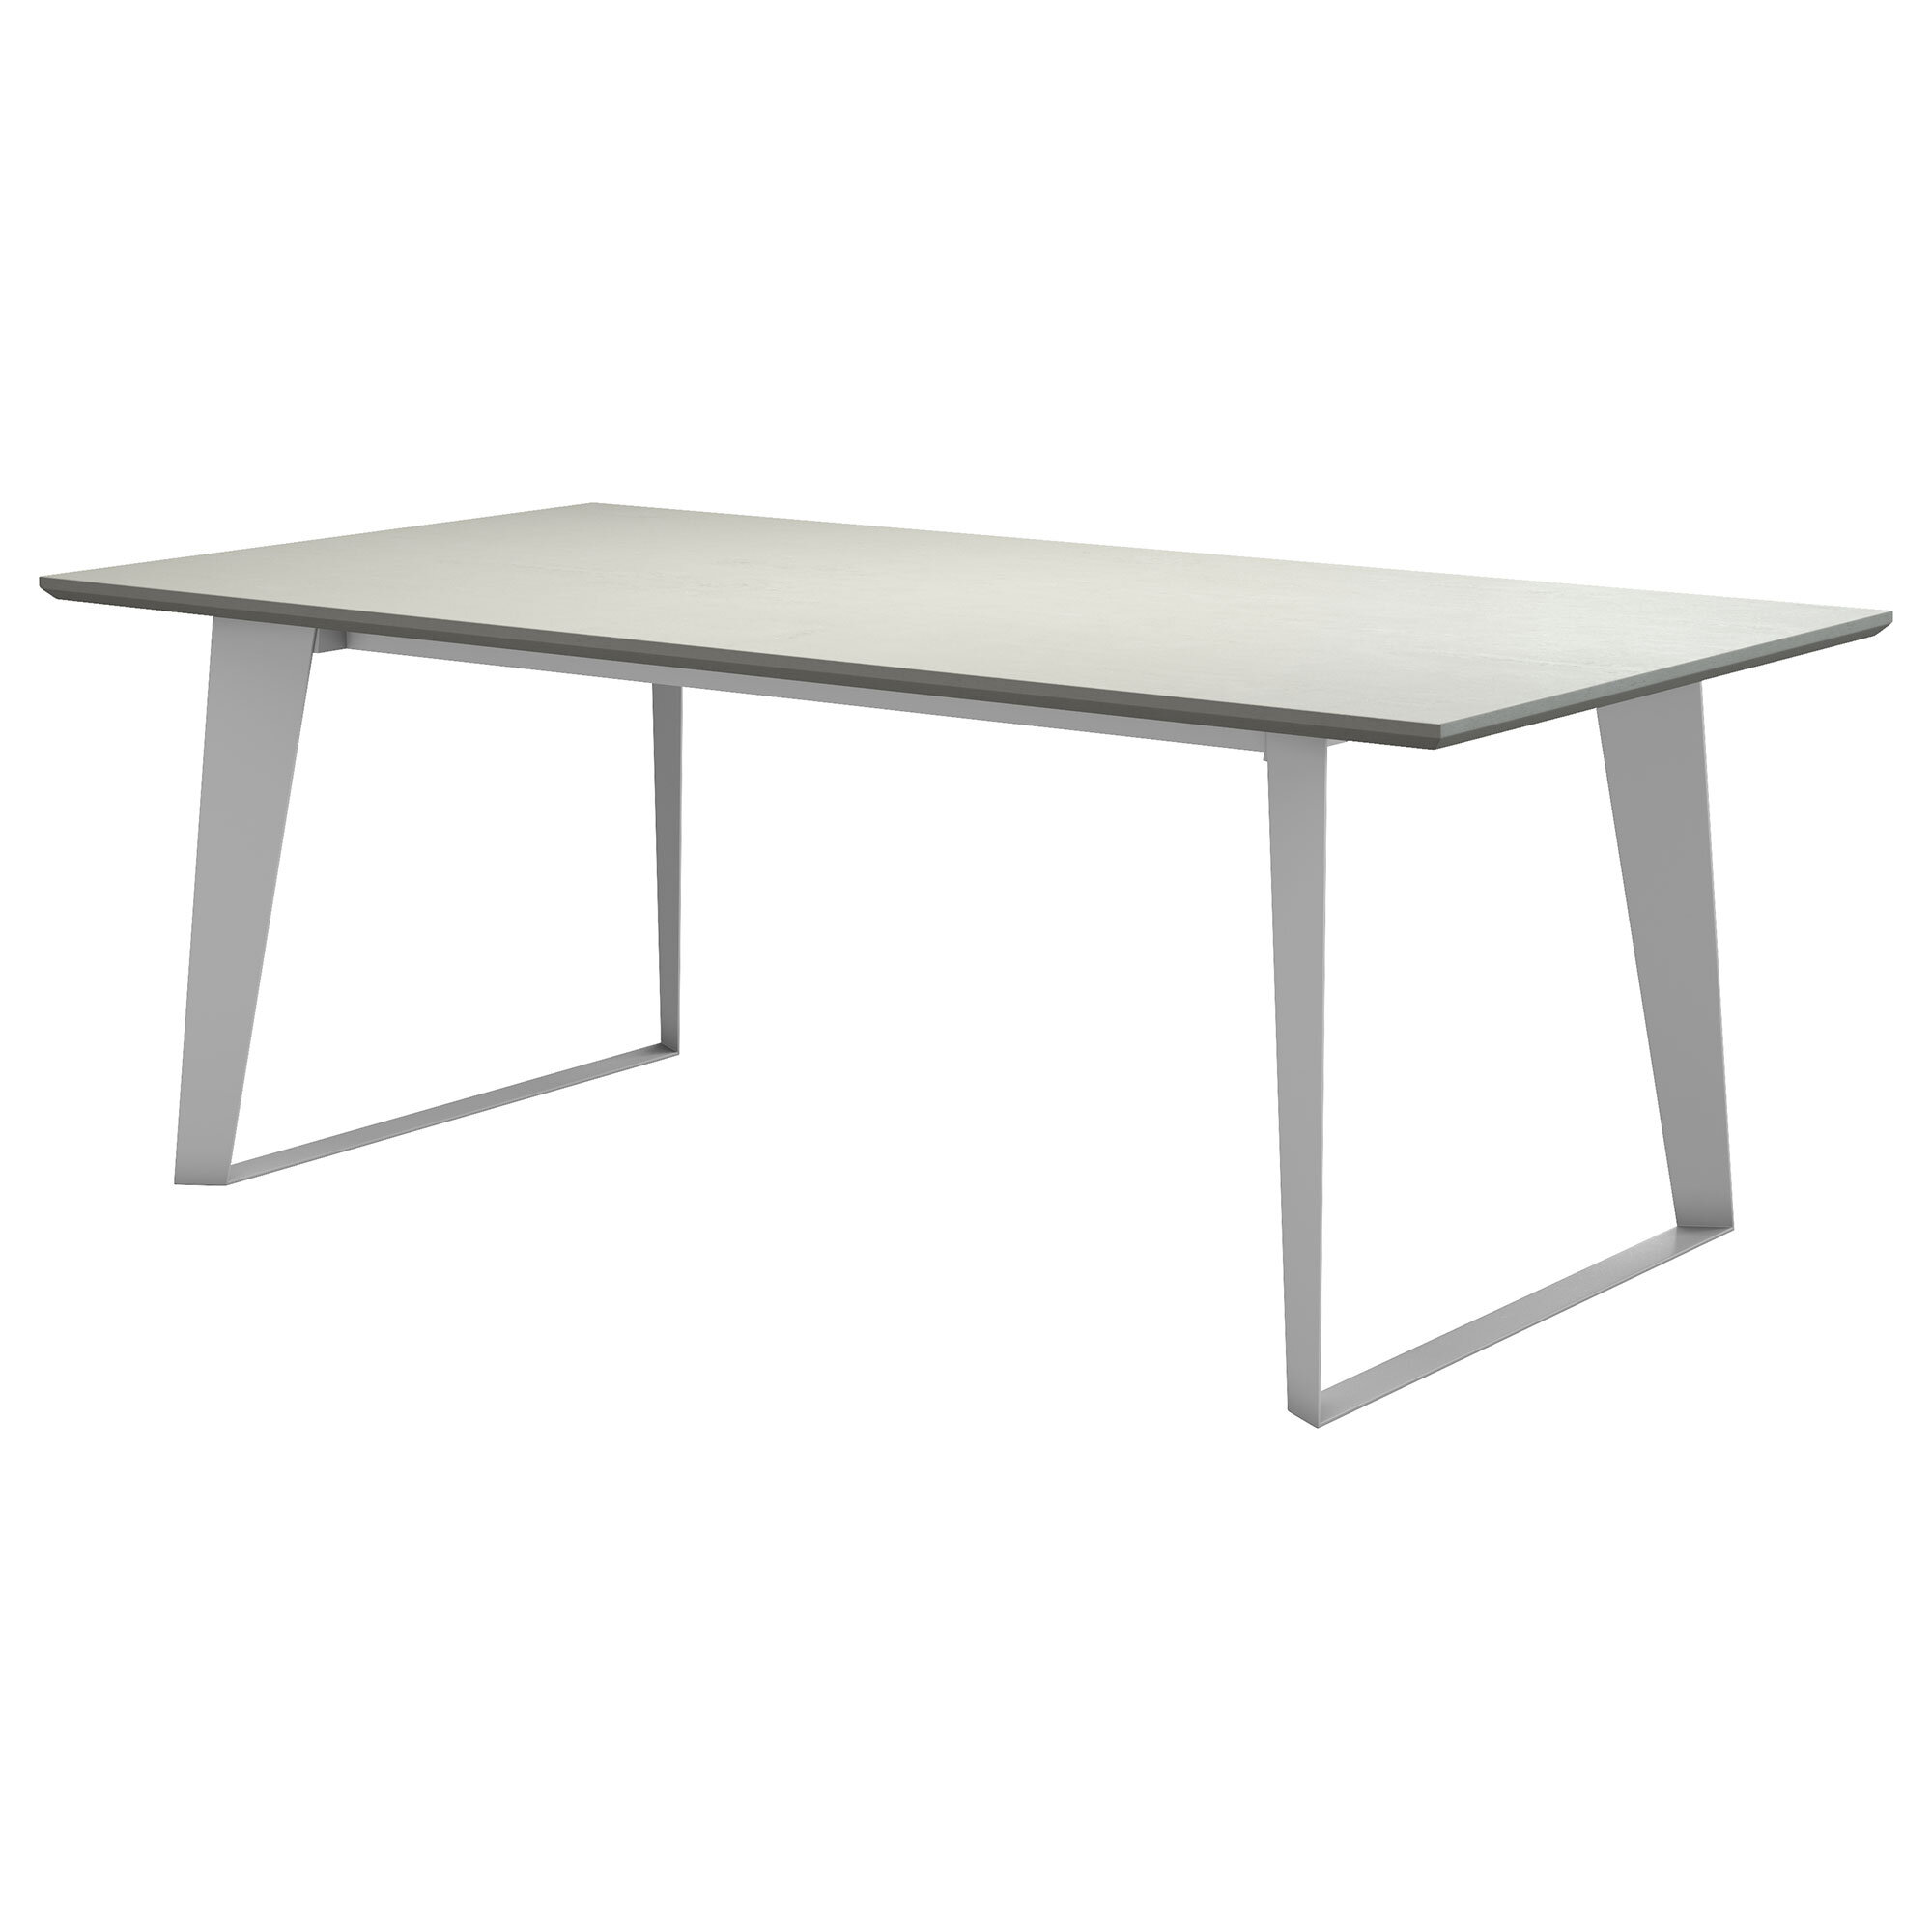 Amsterdam Steel Concrete Dining Table